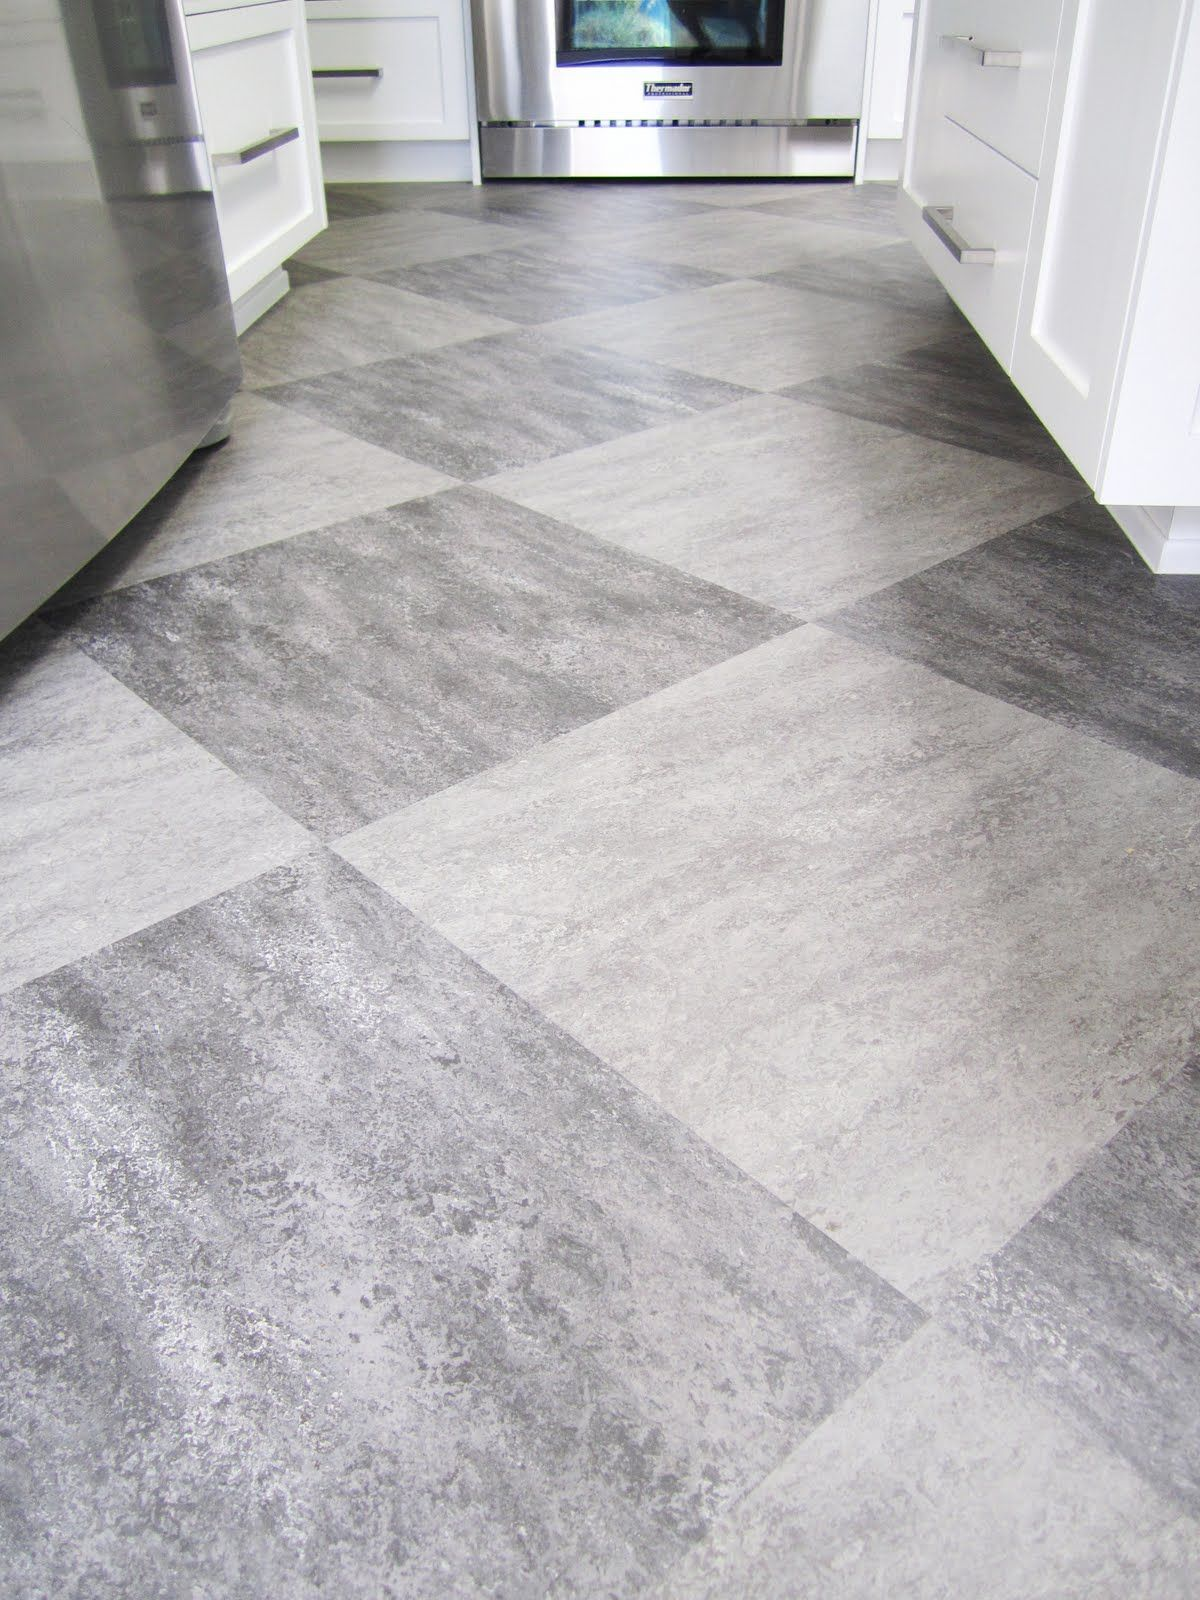 kitchen flooring ideas harlequin tile floors harlequin of grey on grey tiles is used on the